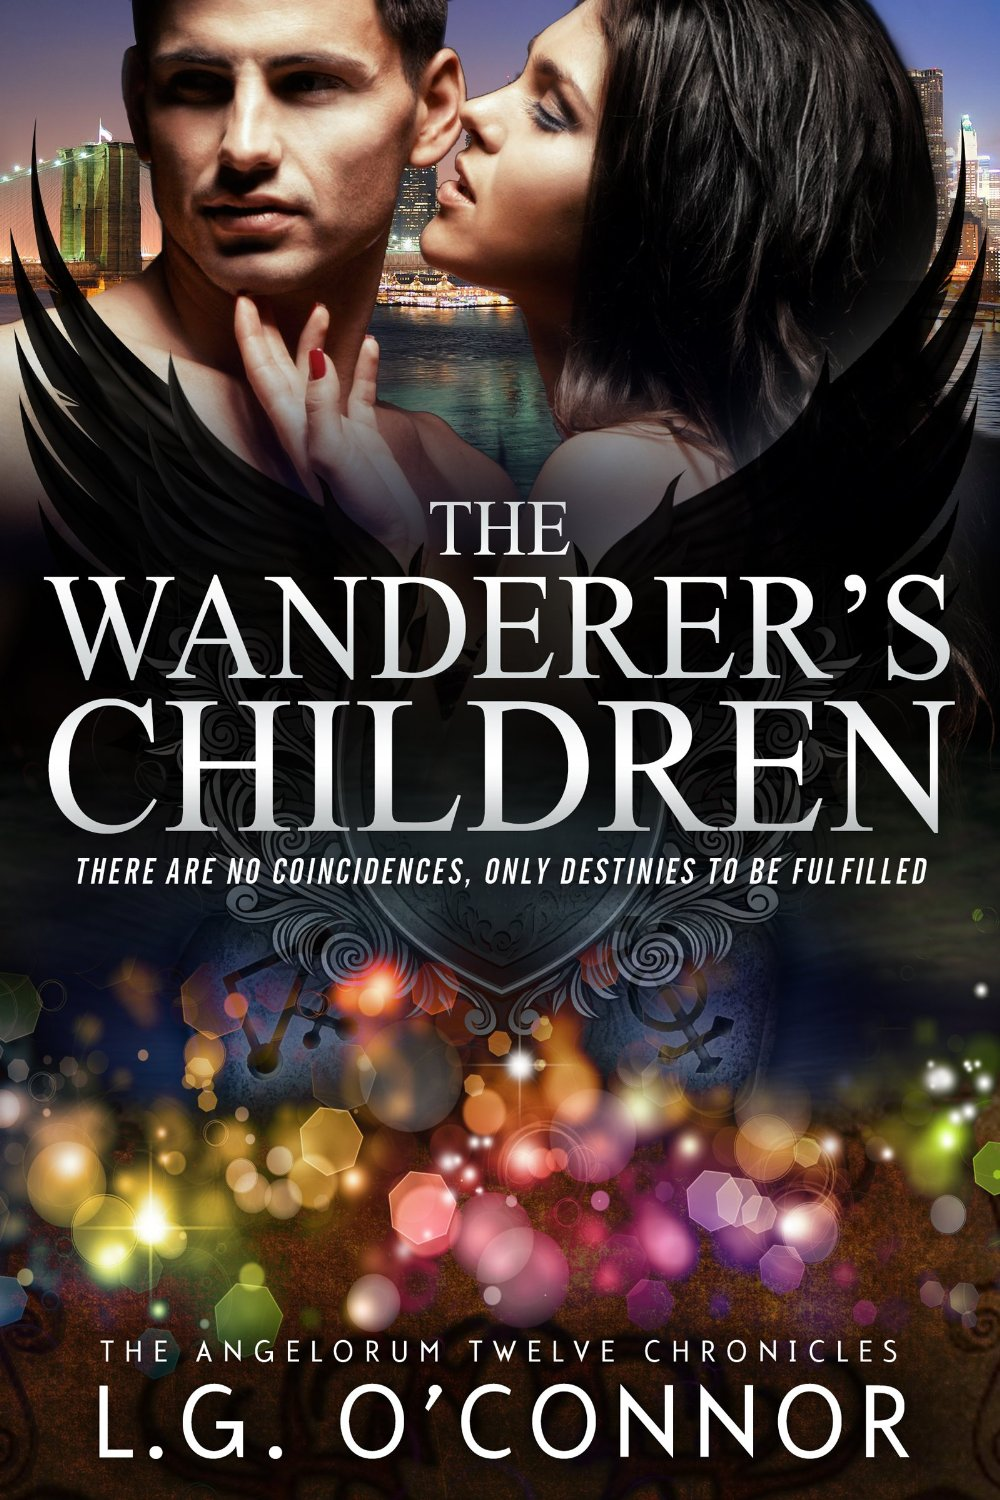 Wanderer's Children